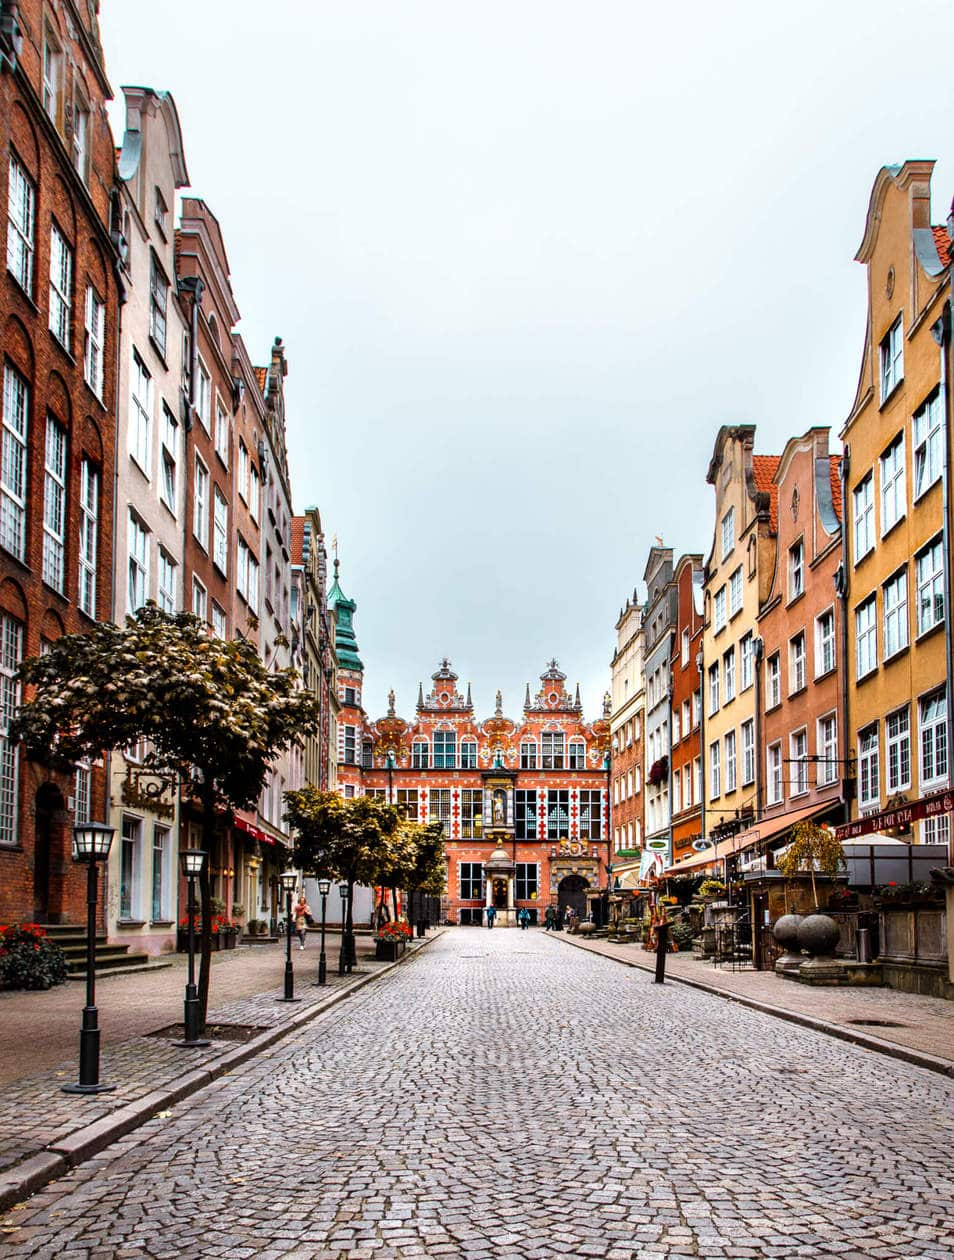 Piwna Street // There is no shortage of picturesque views, cozy streets and Instagrammable photo spots in Gdansk, Poland. Click to discover my top 6 streets for photo inspiration in Old Town.